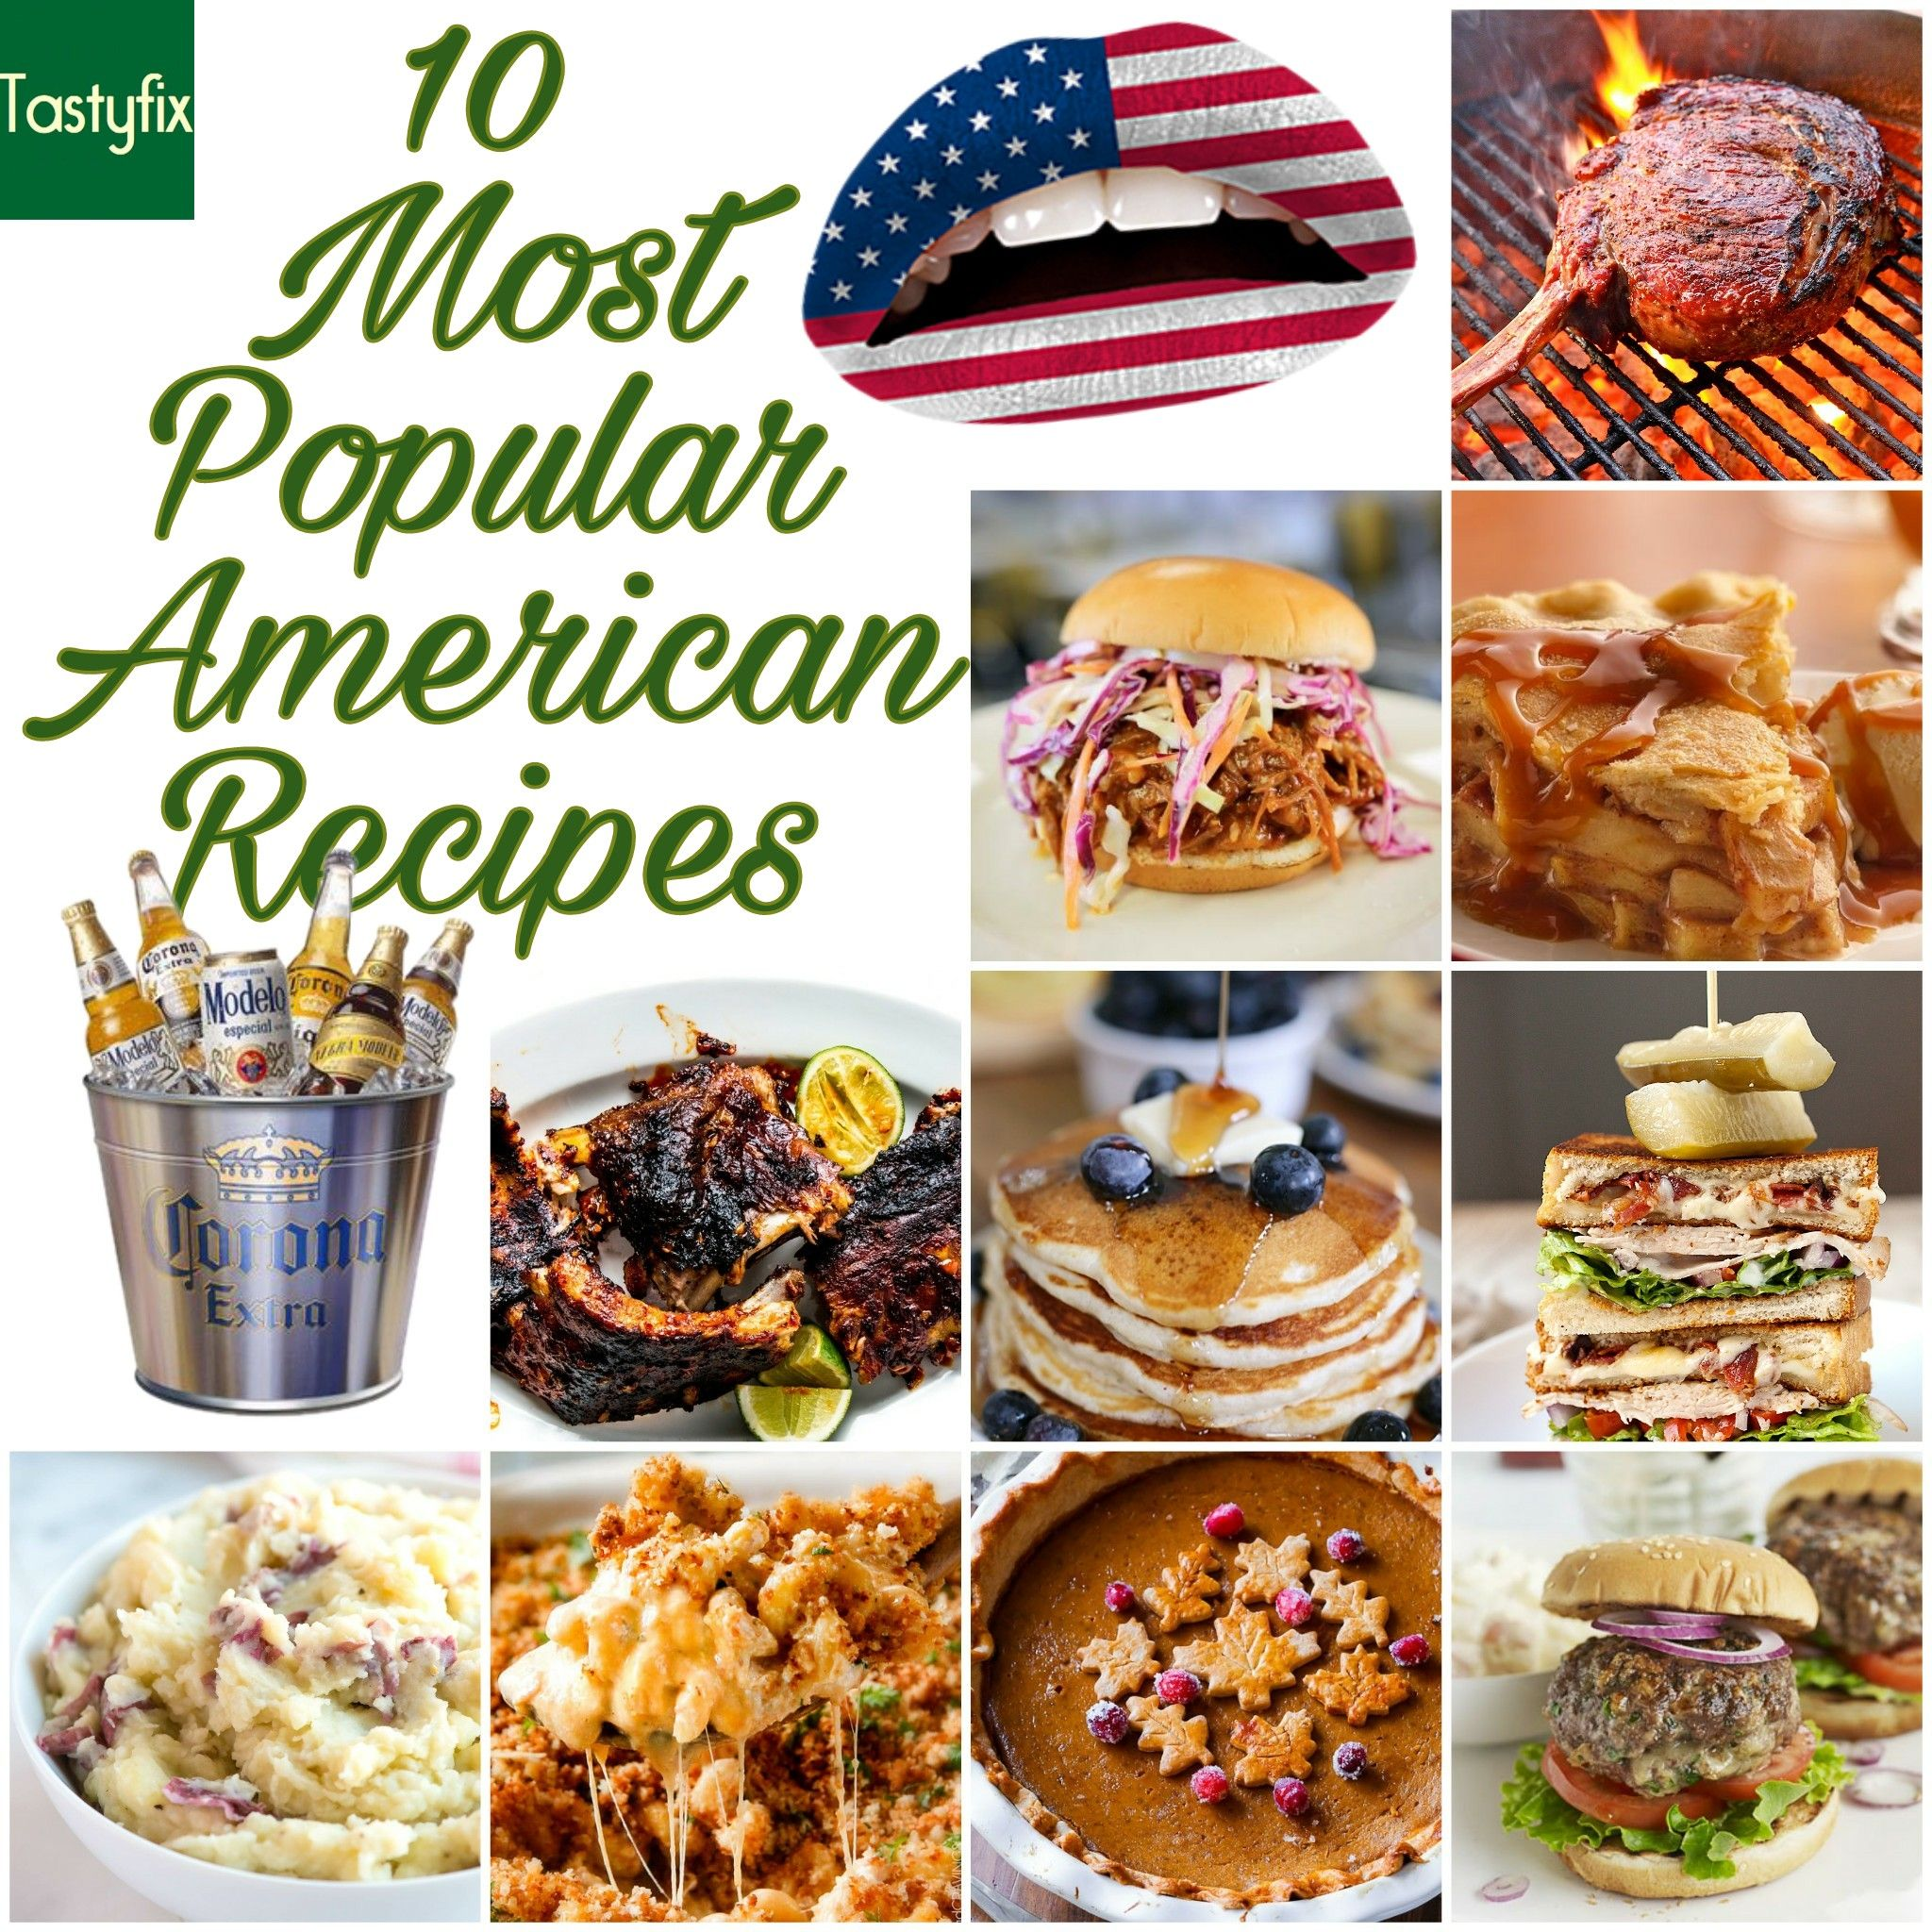 10 most popular american recipes american recipes tasty and recipes 10 most popular american recipes tasty healthy americanfood eatdrinksf delicious yummy forumfinder Image collections